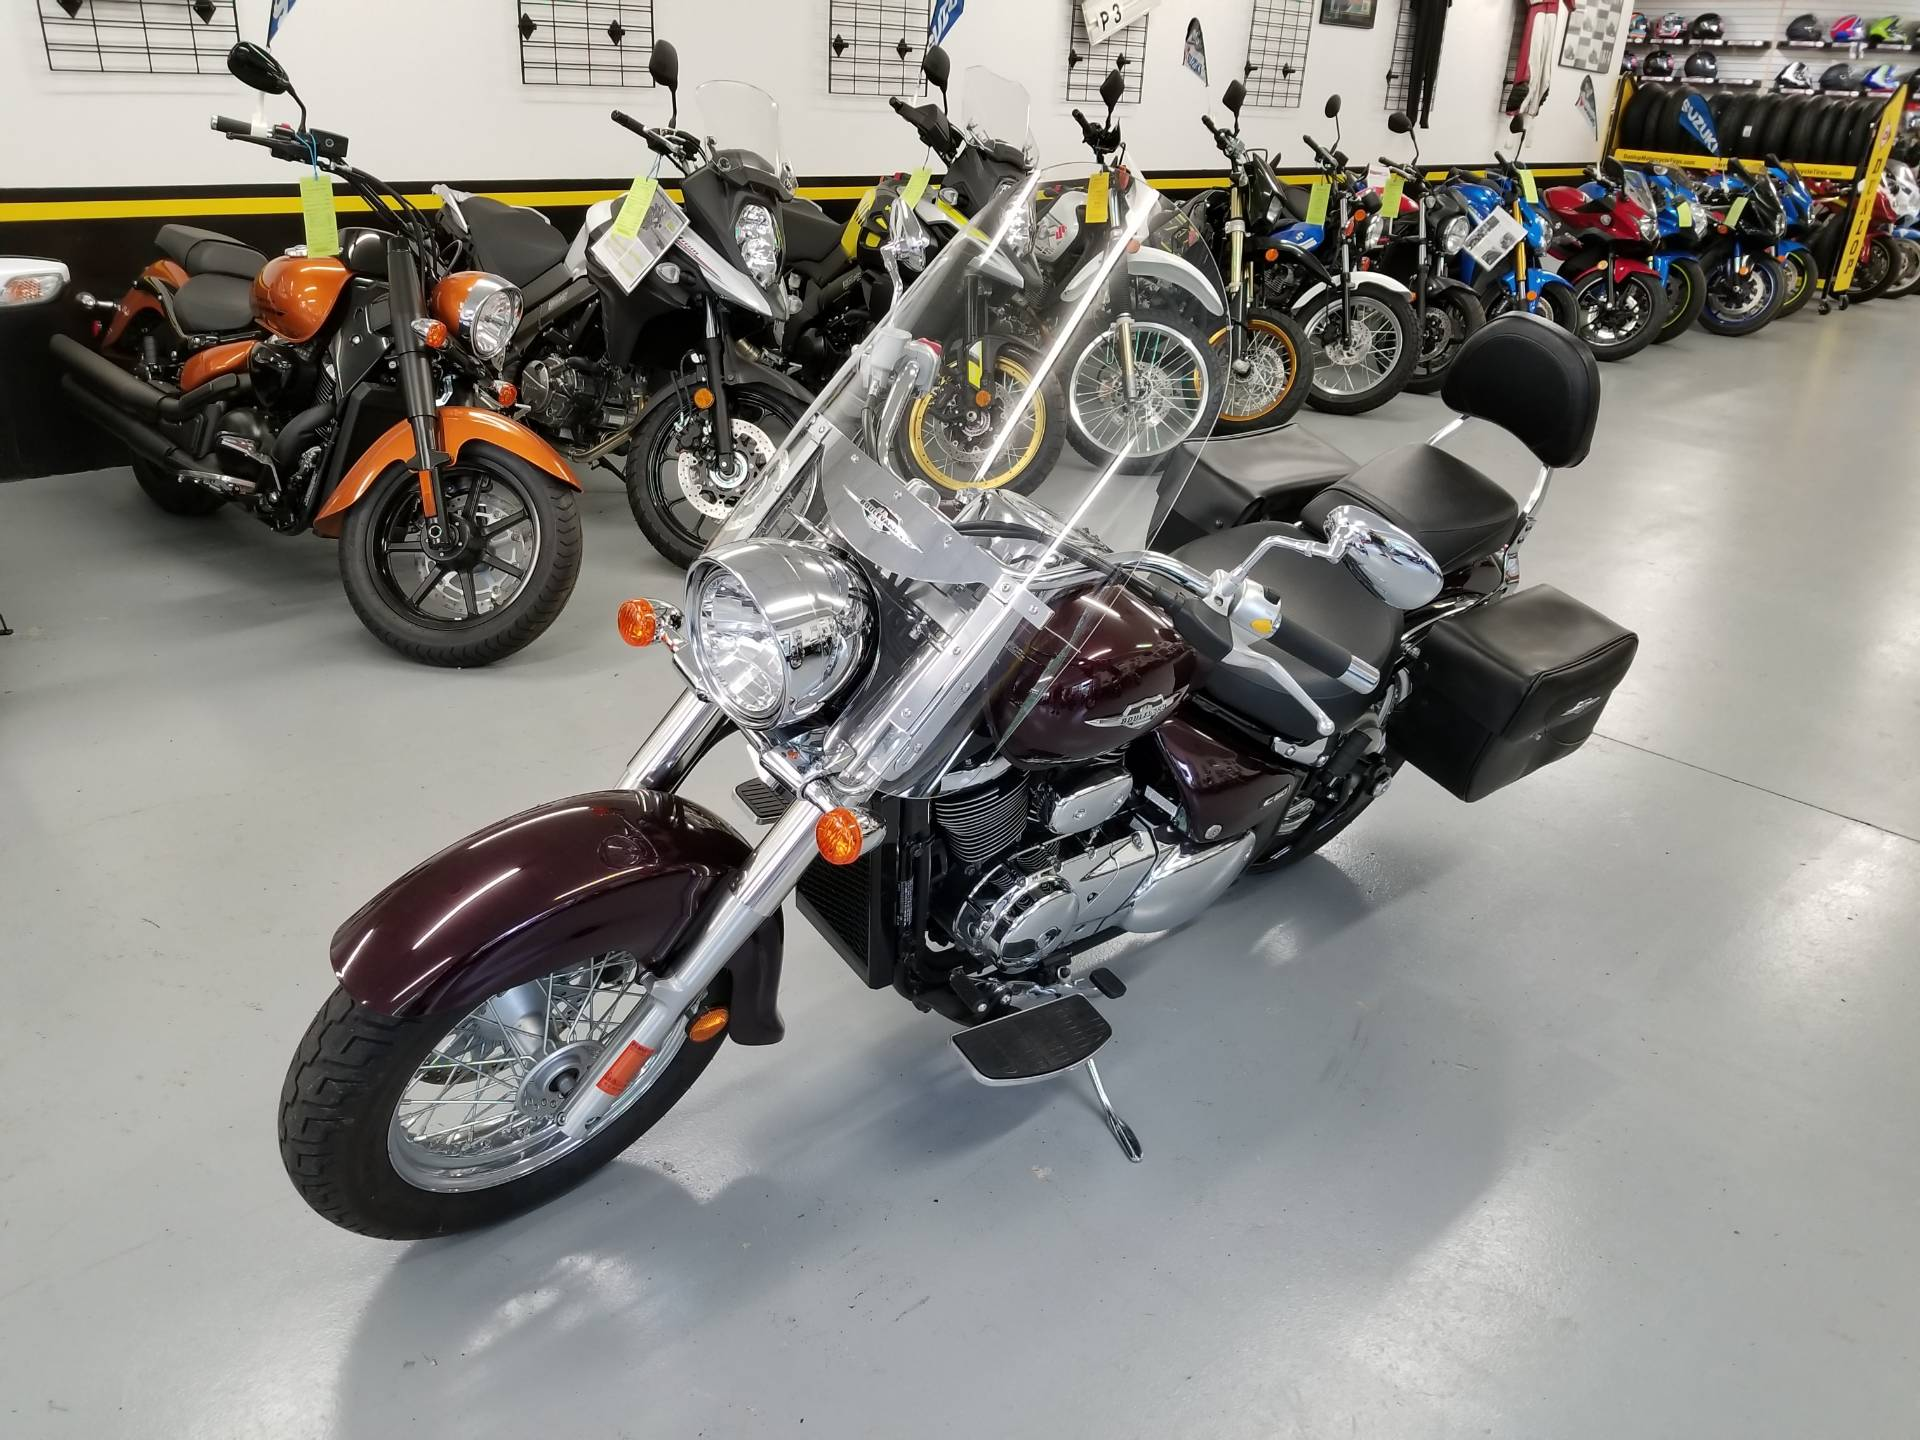 2009 Suzuki Boulevard C50 in Mechanicsburg, Pennsylvania